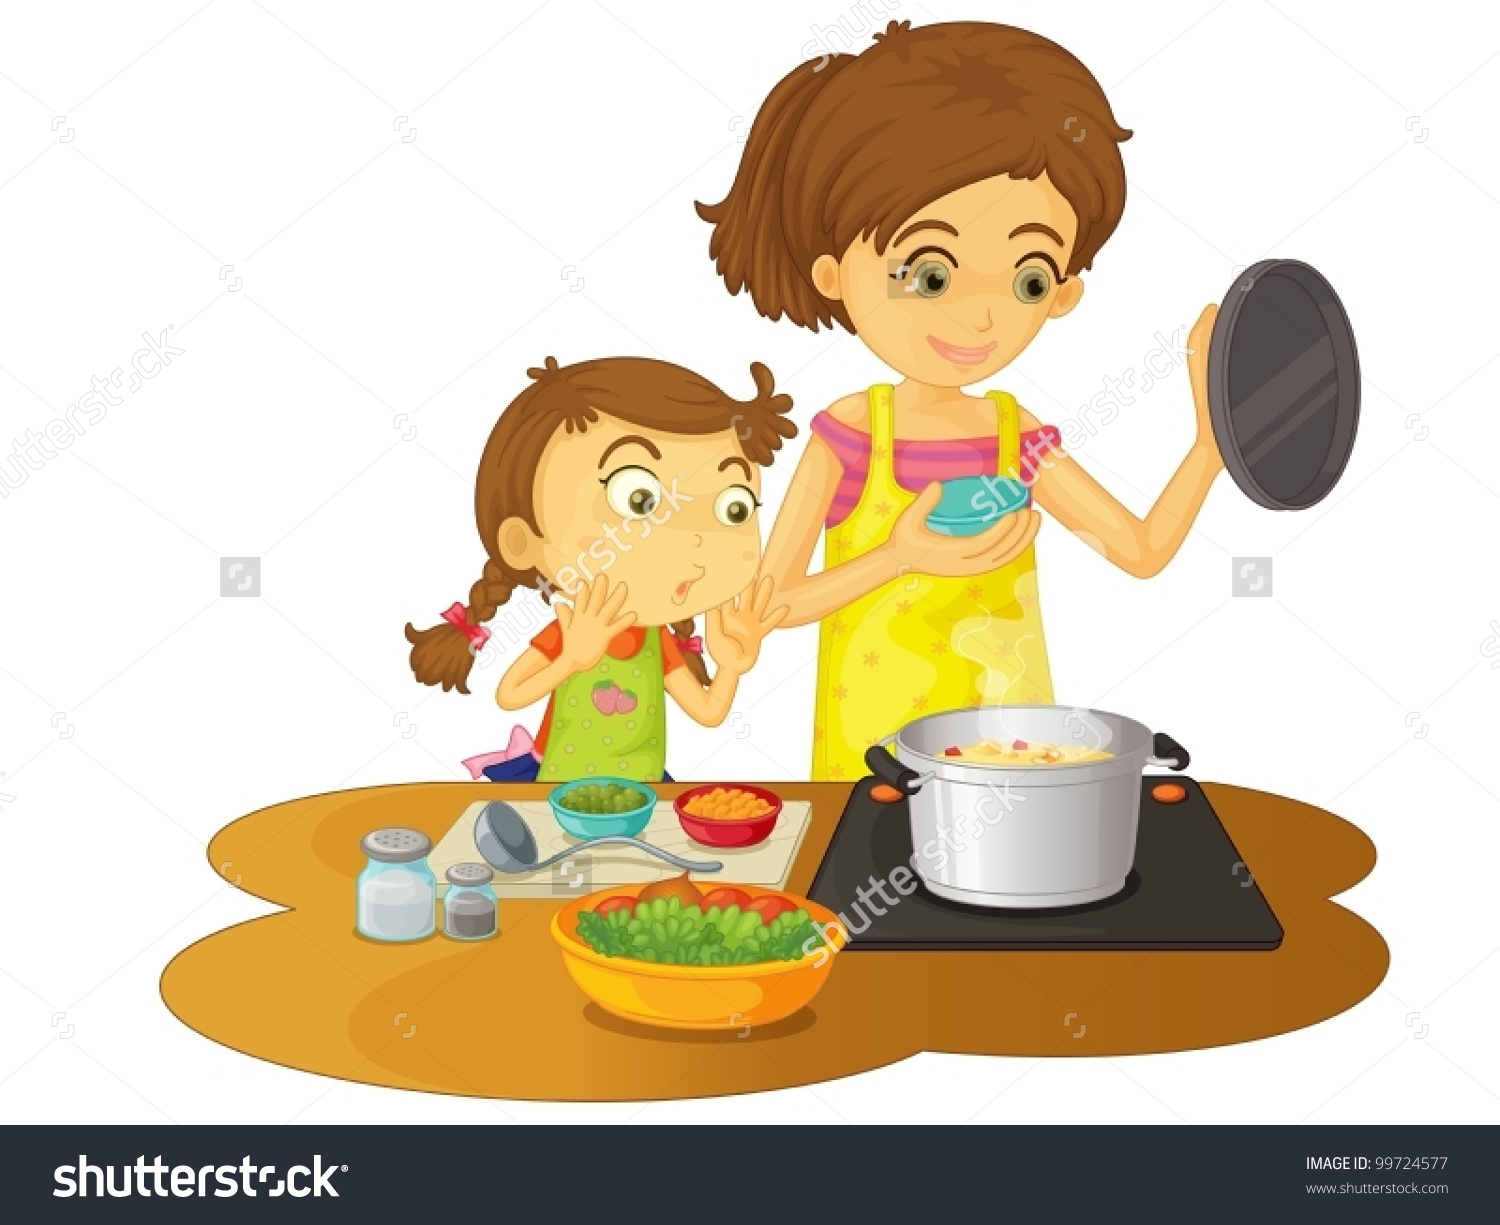 hight resolution of mother cooking clipart 3